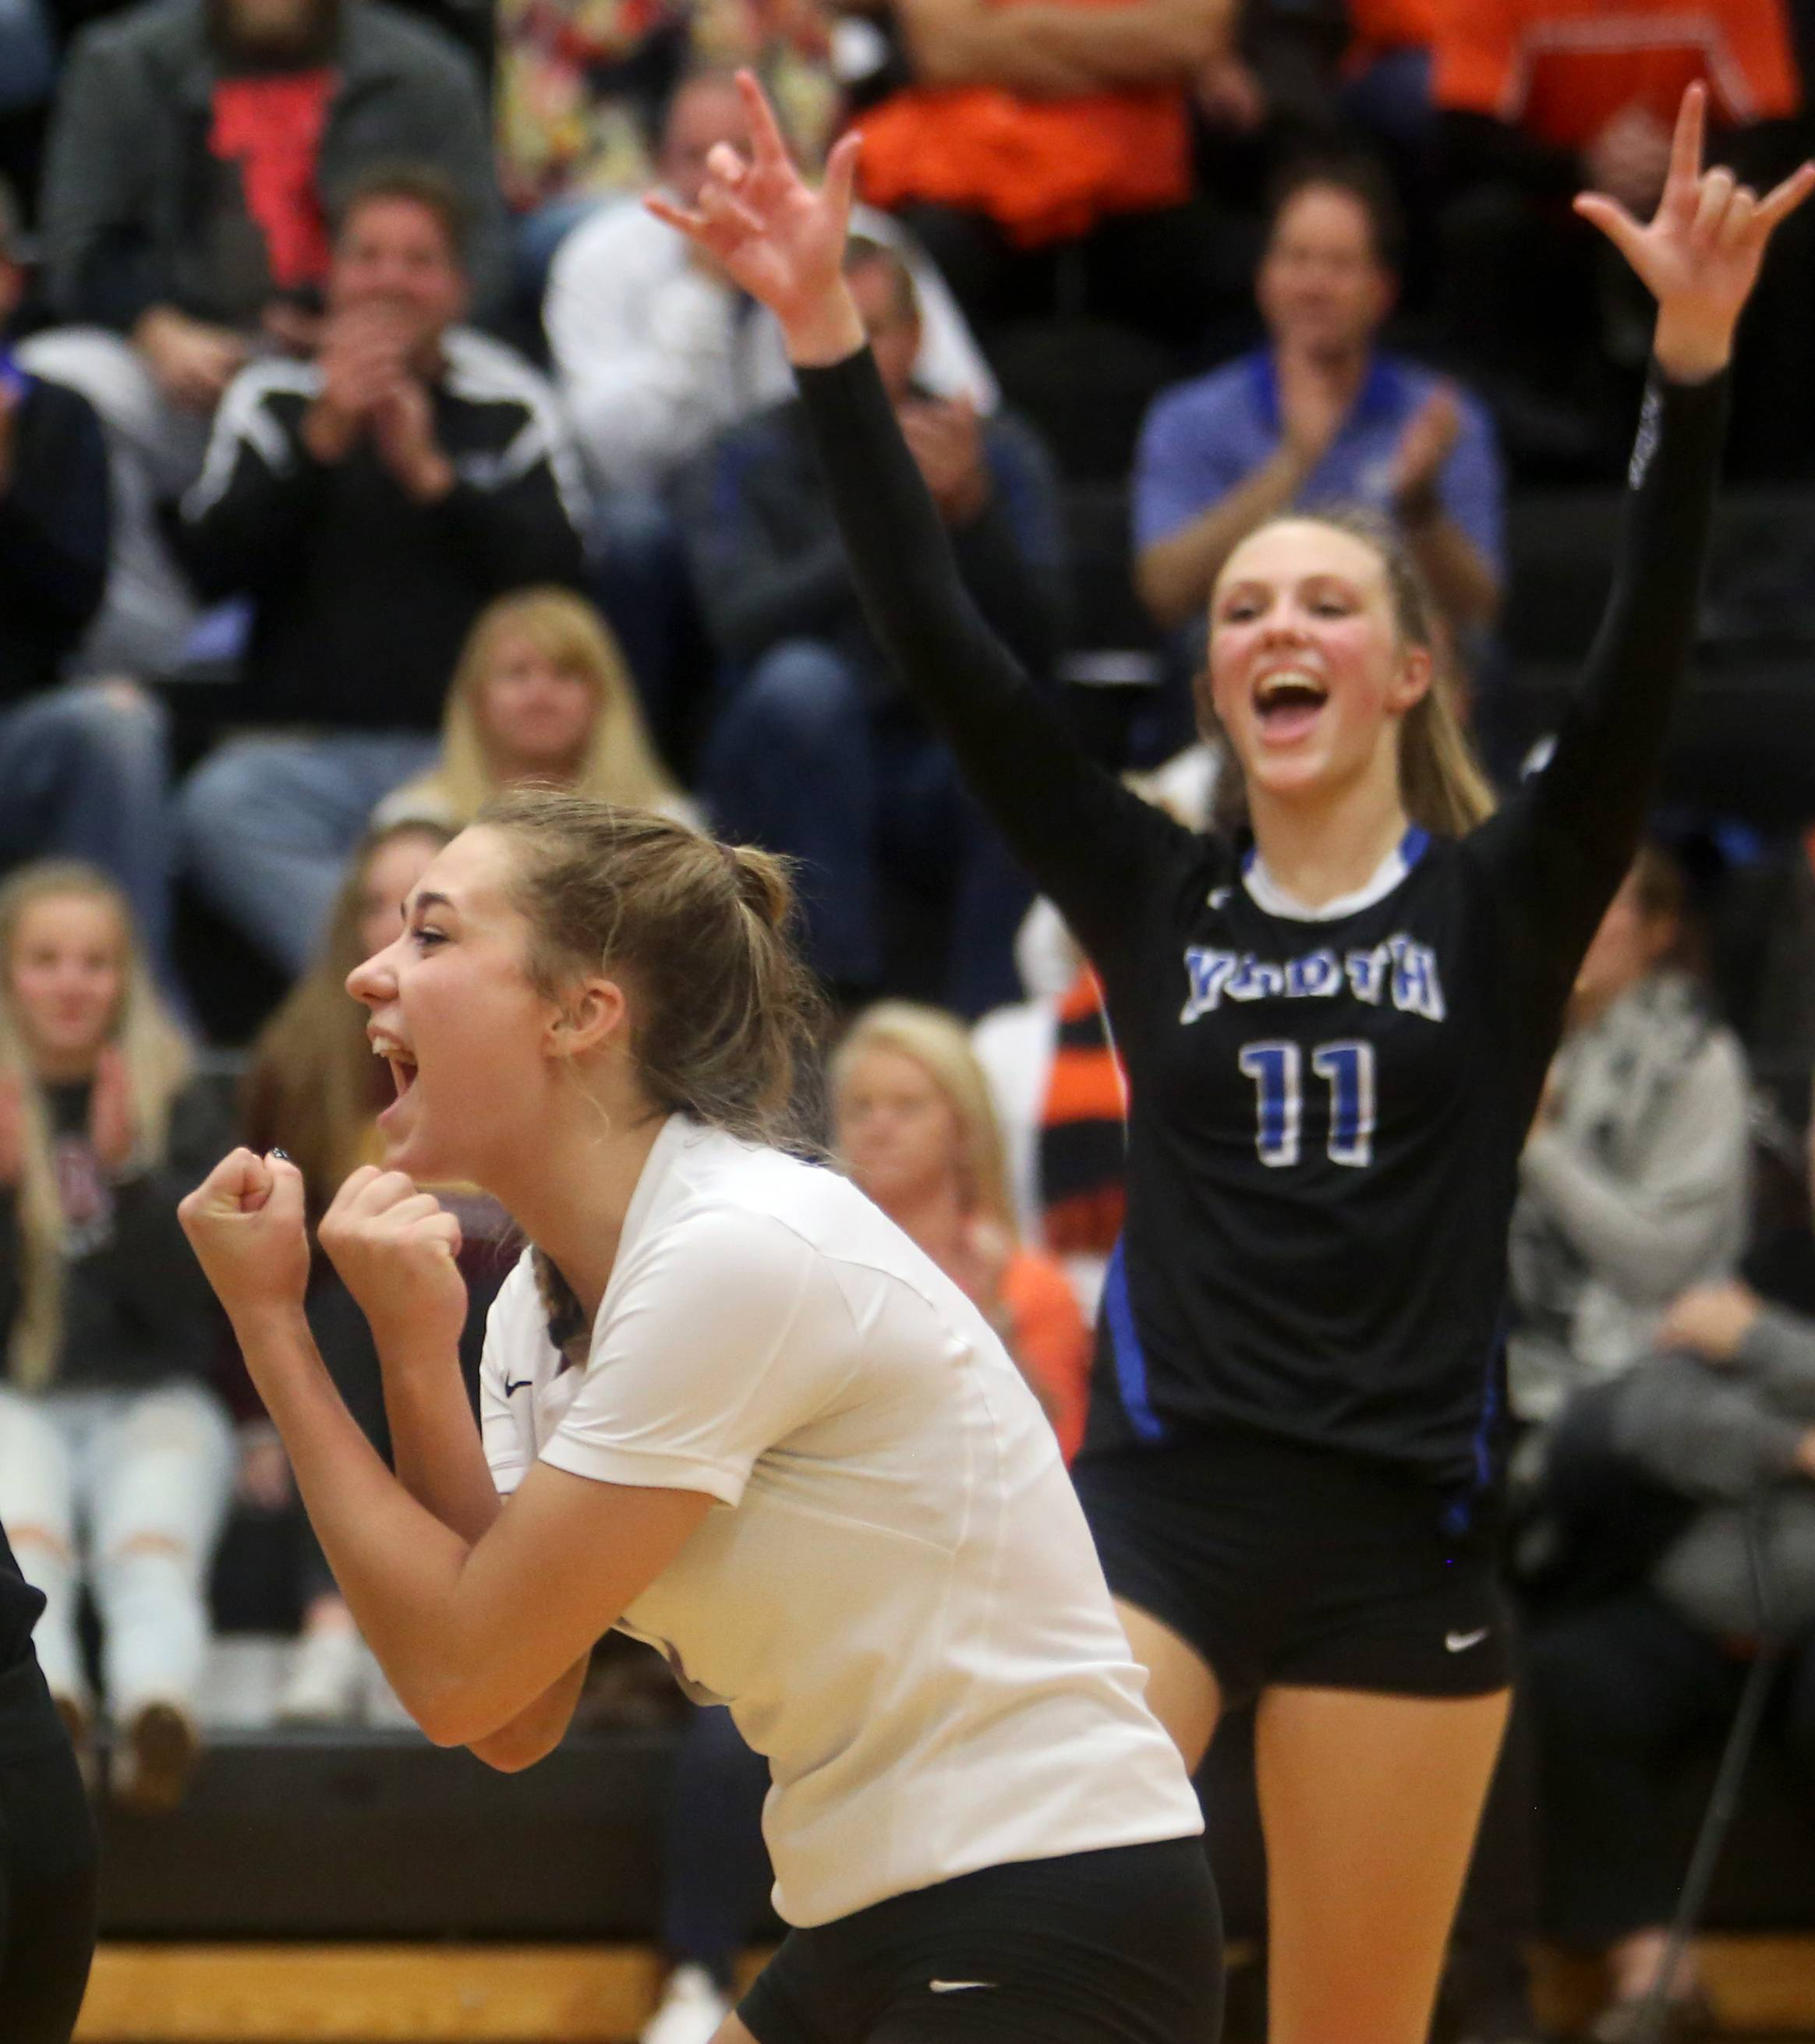 The St. Charles North Stars begin to celebrate a sectional title victory over St. Charles East at Chuck Dayton Gymnasium on the campus of DeKalb High School Wednesday night. Lauren Caprini, left, and Katie Lanz react to the win.